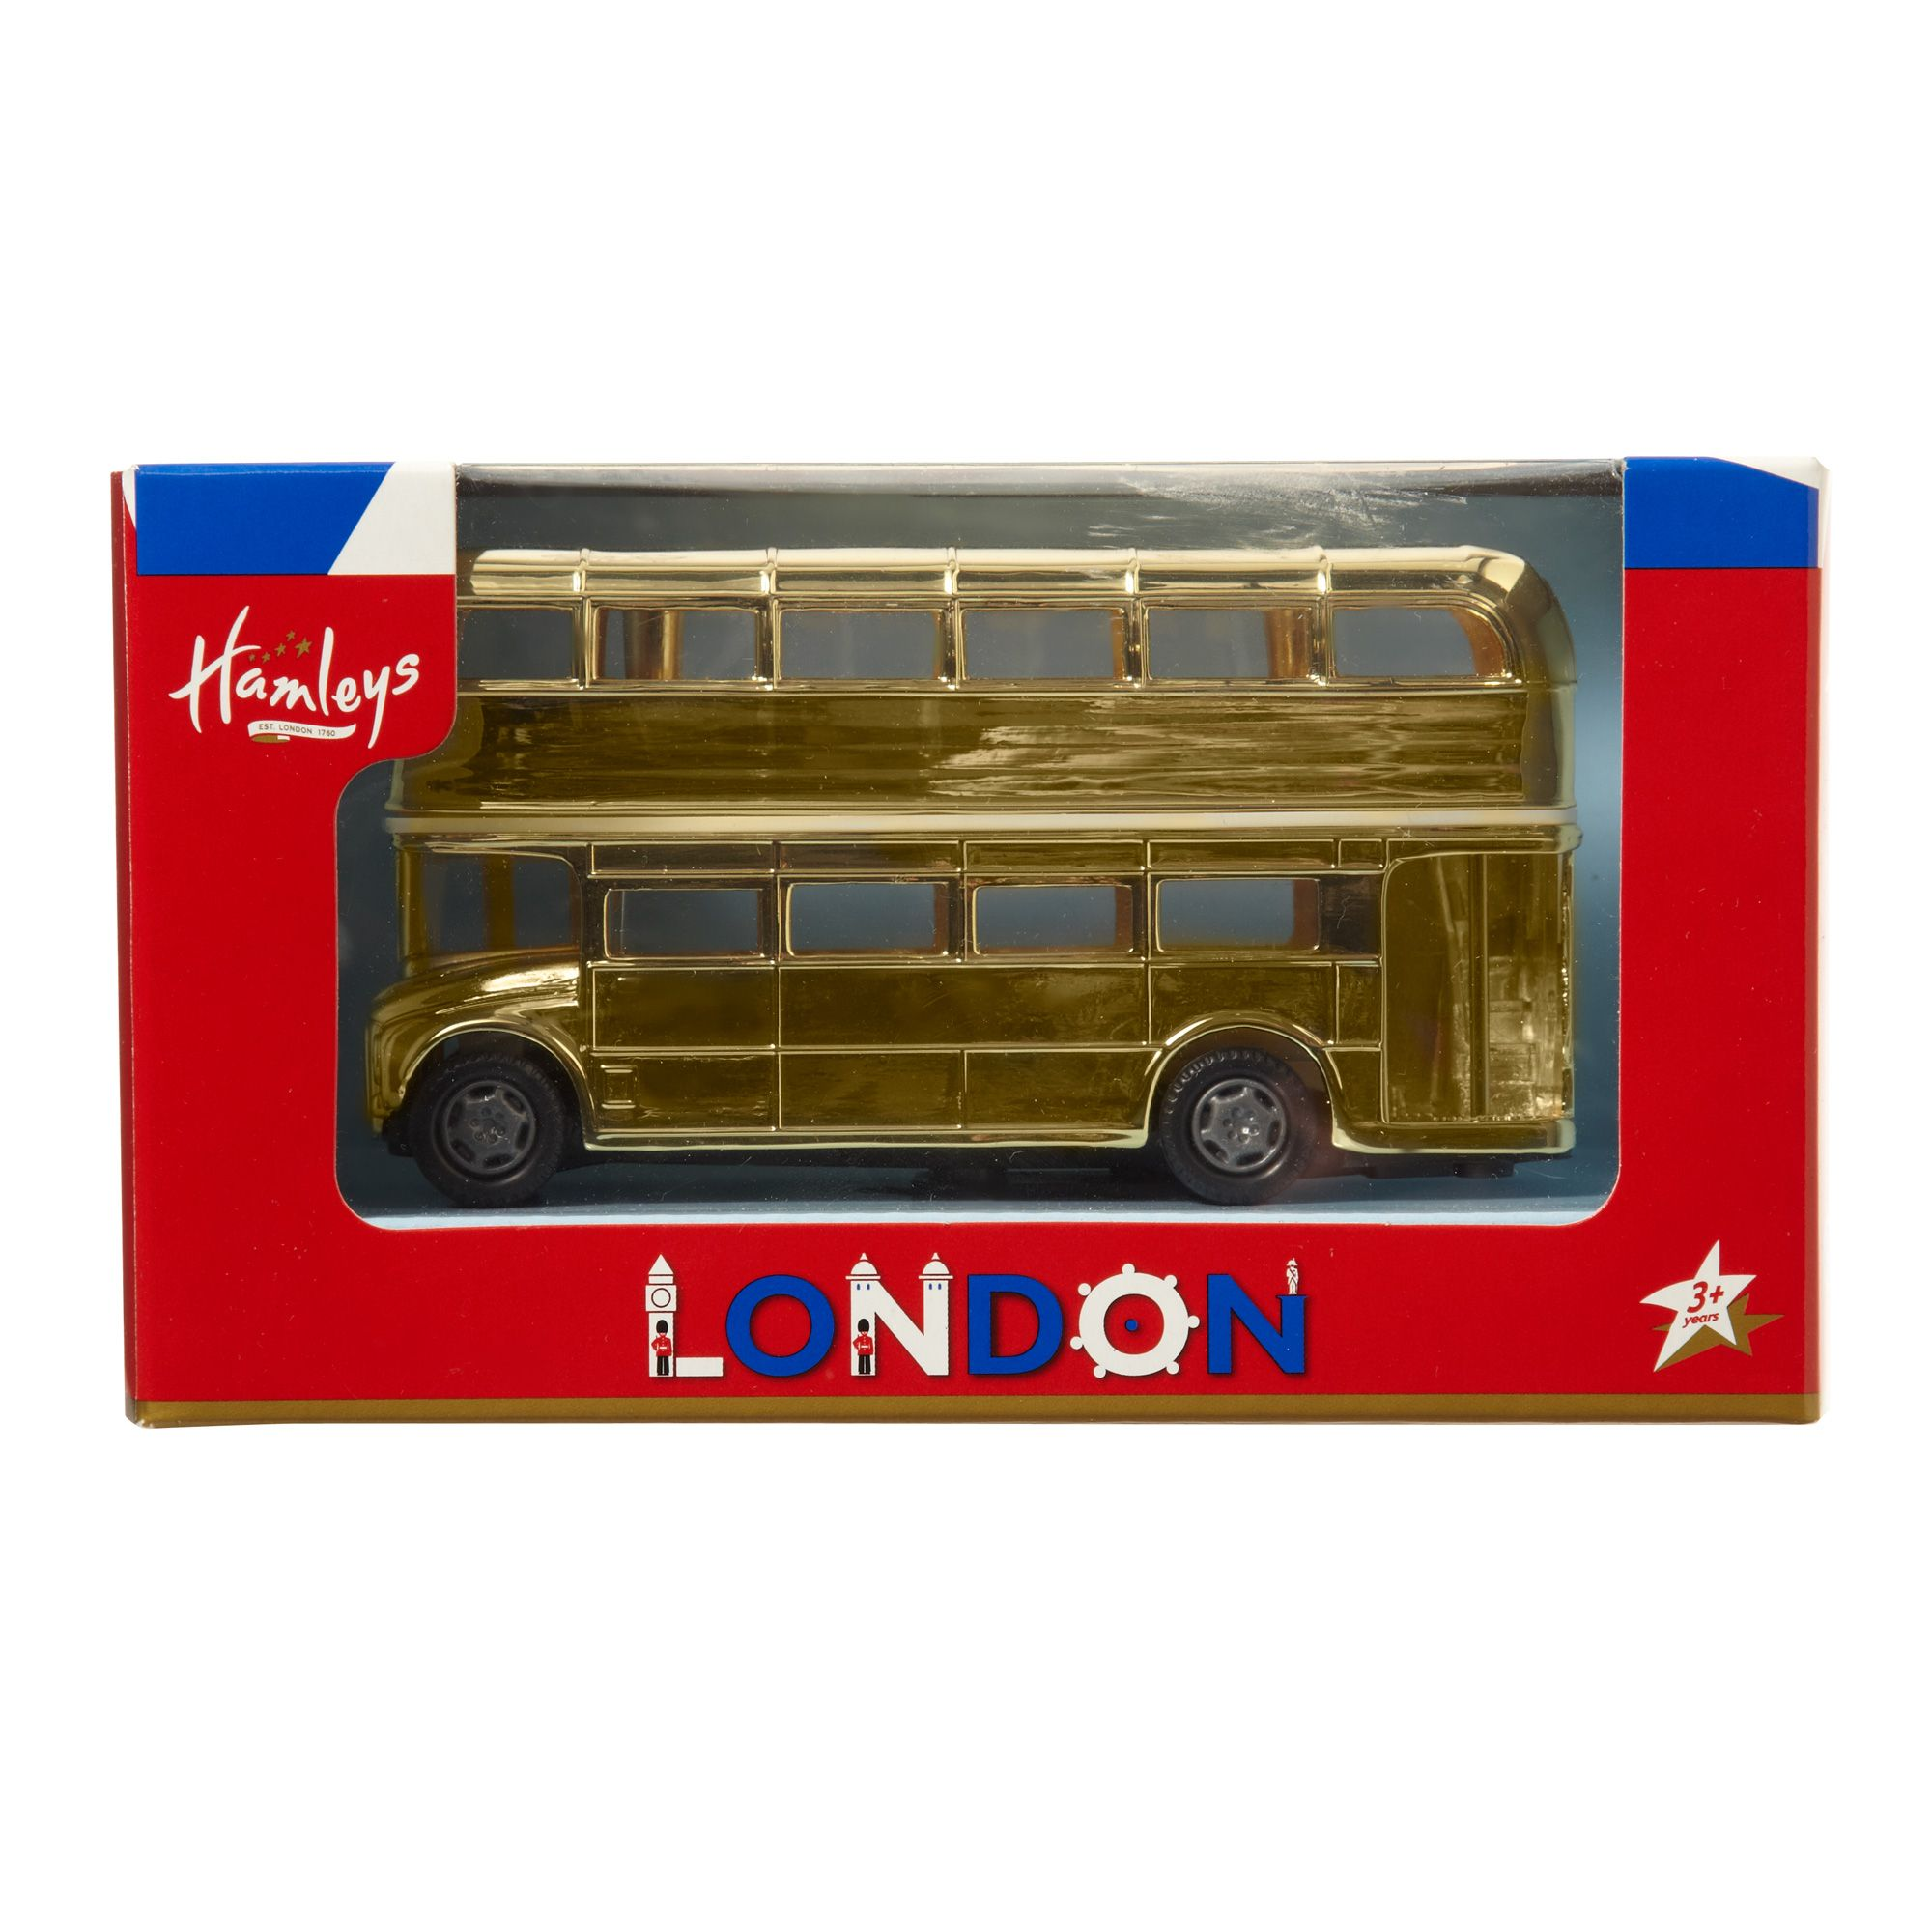 Hamleys limited edition gold bus